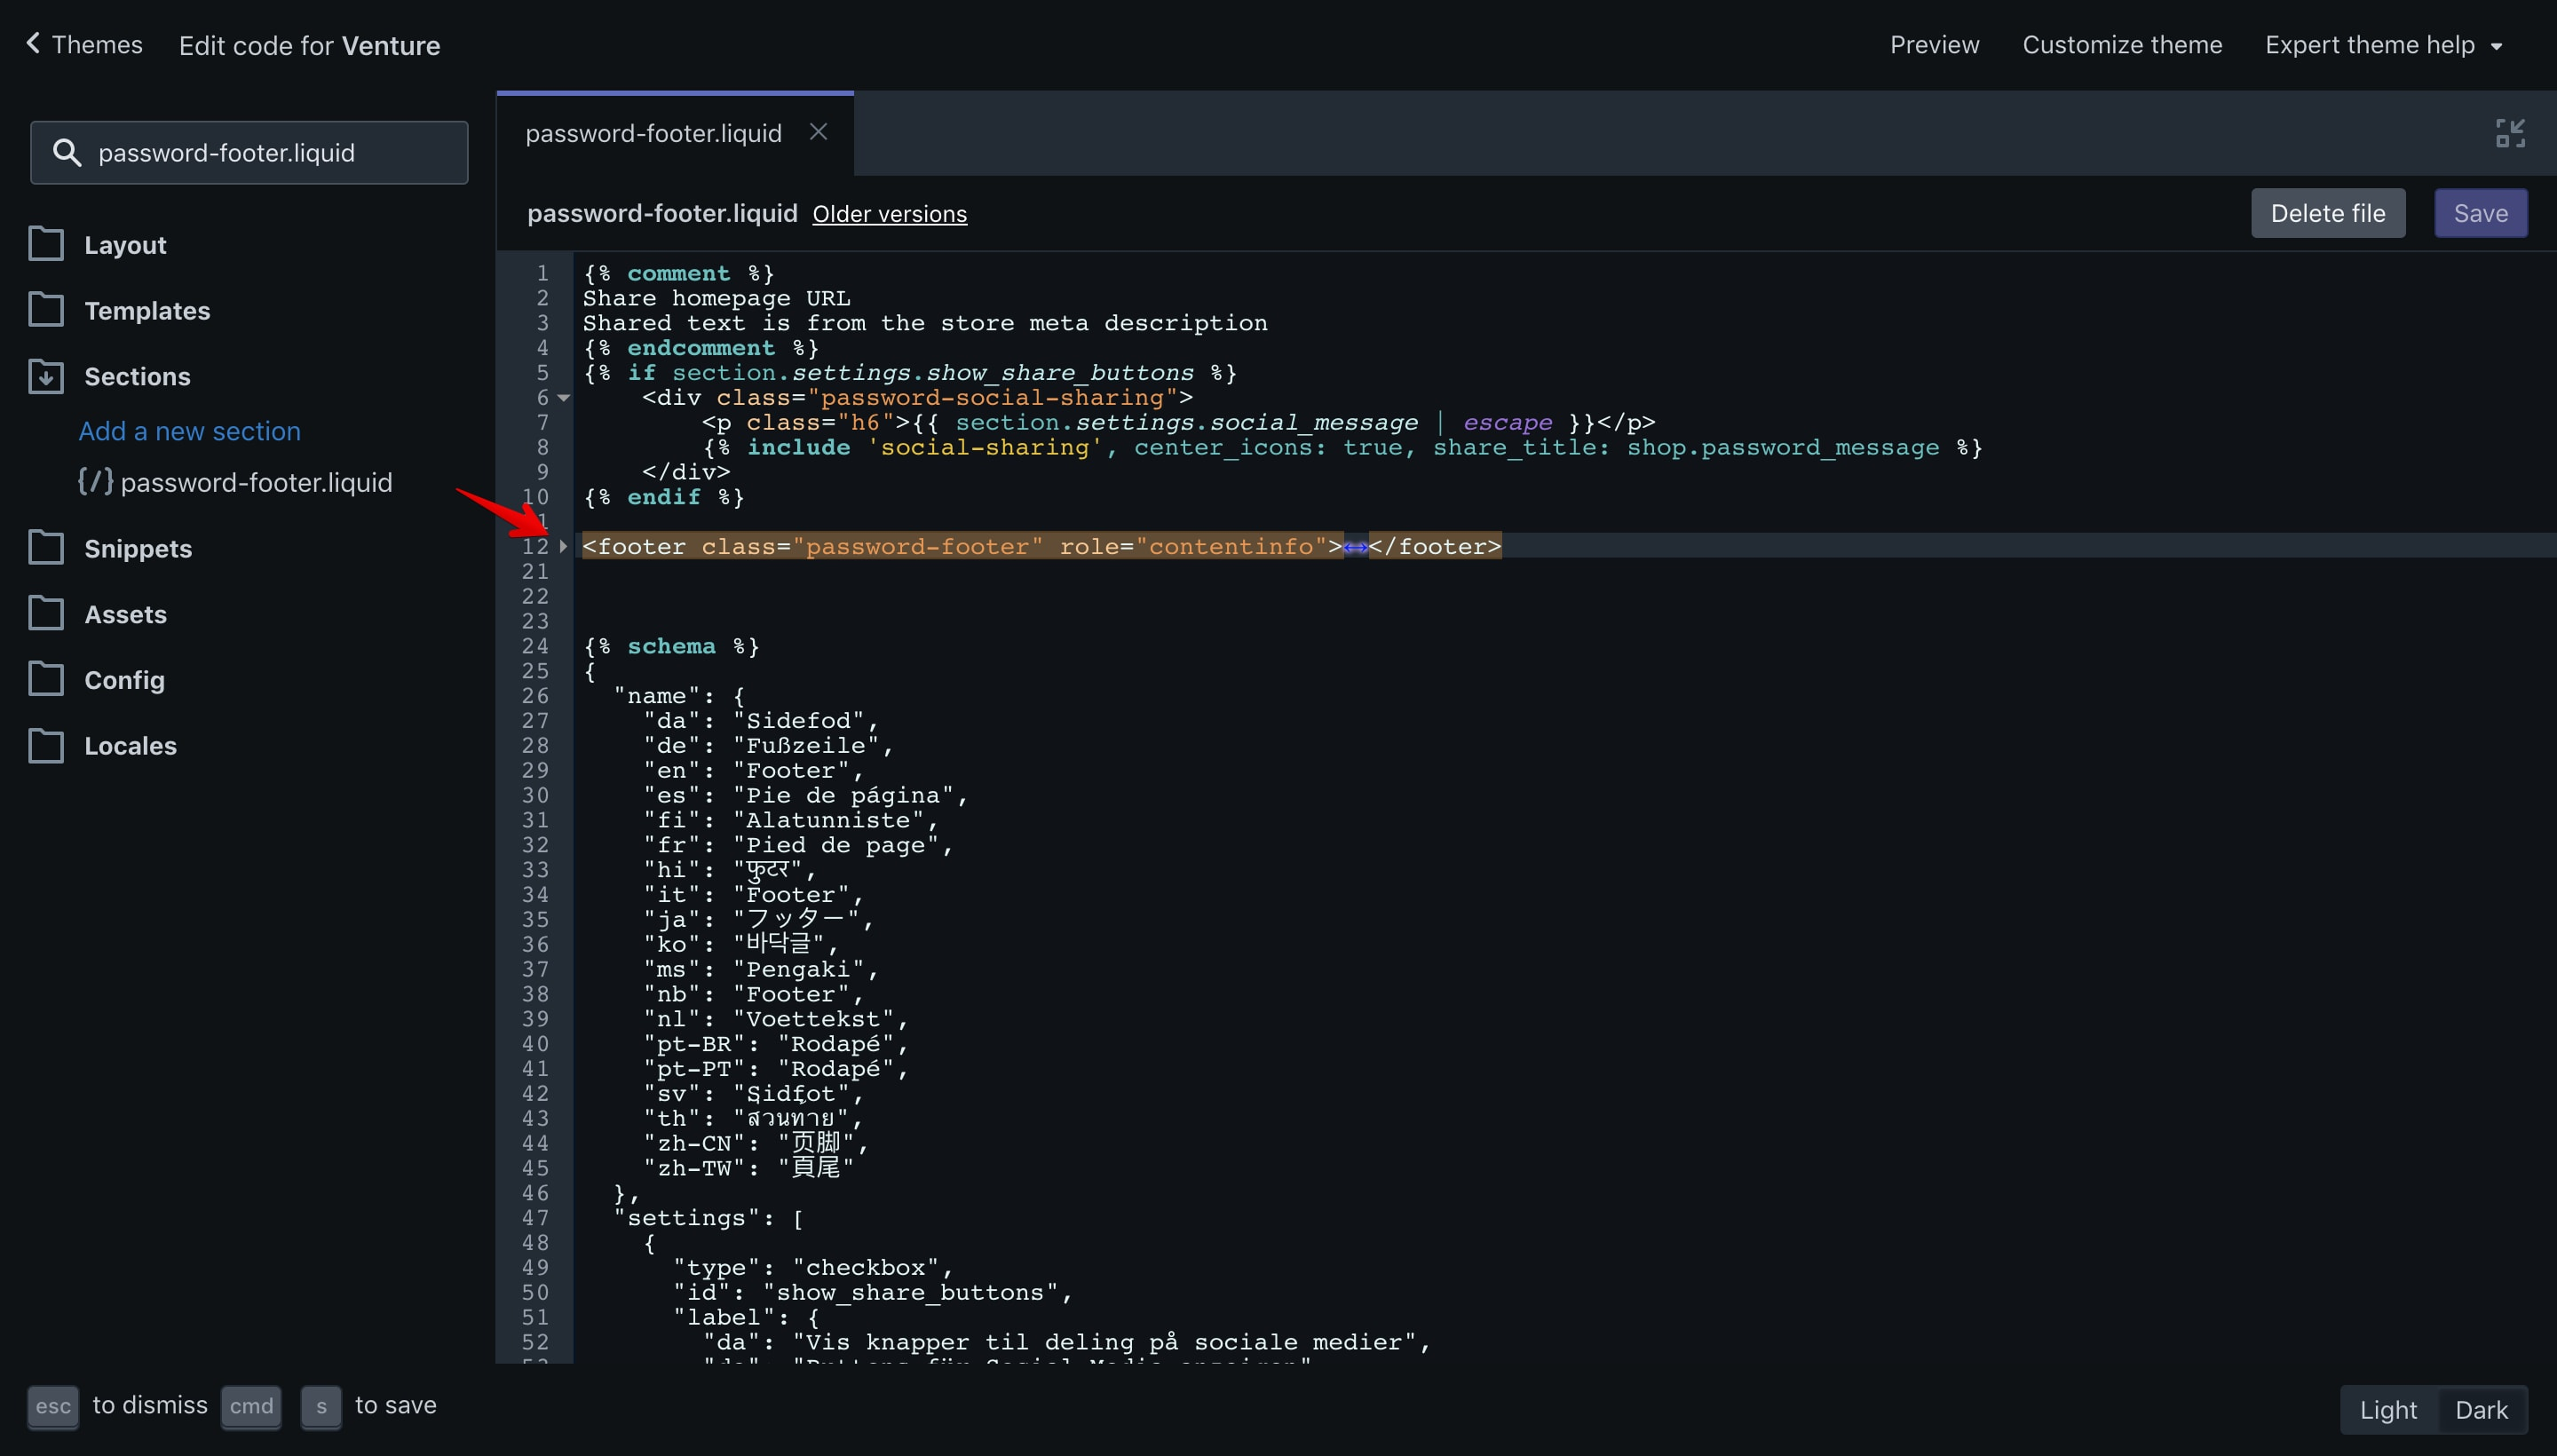 Venture theme copyright code selection in the code editor.